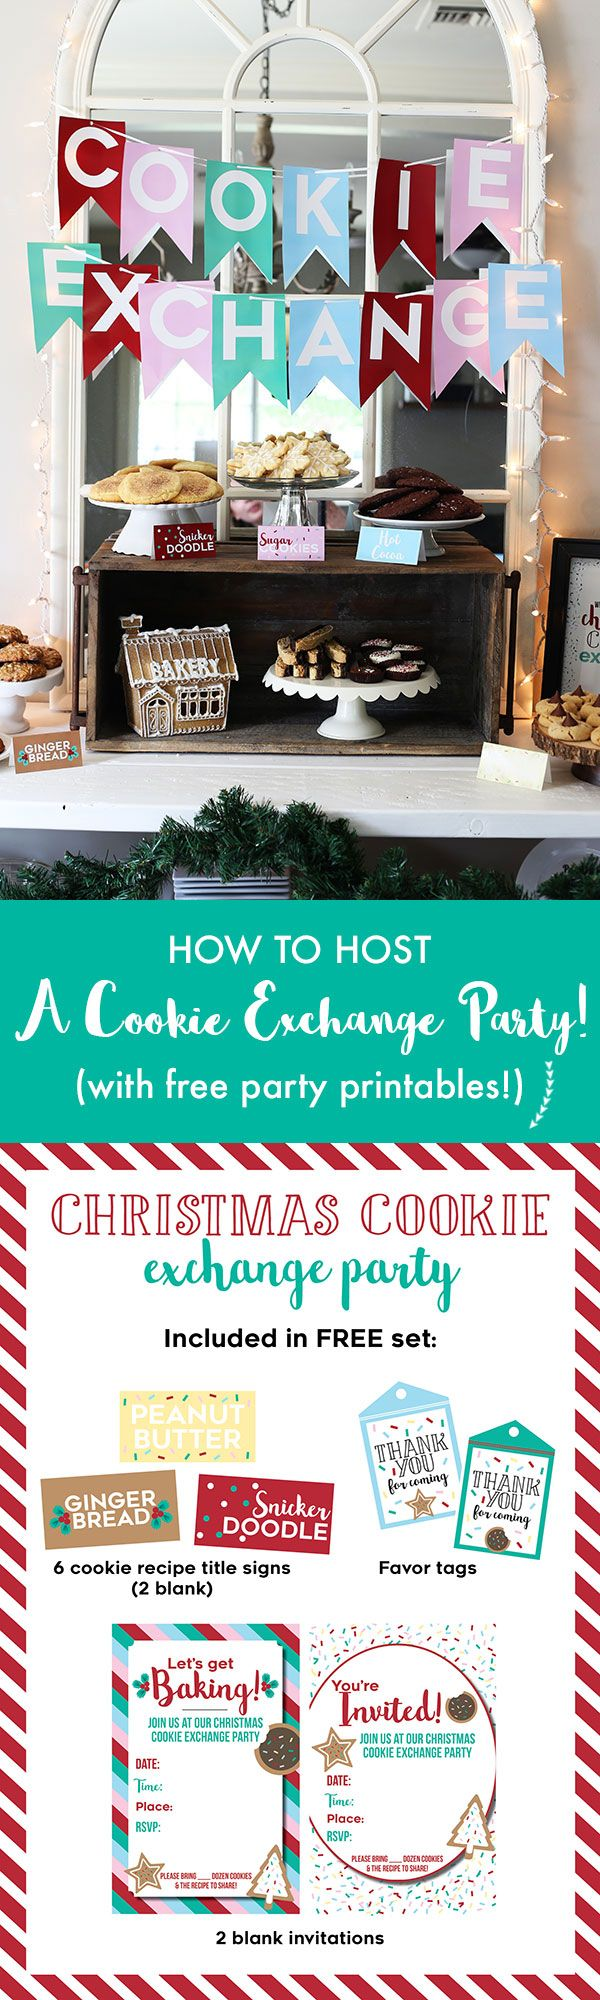 How to Host a Christmas Cookie Exchange Party, with a FREE set of party printables!